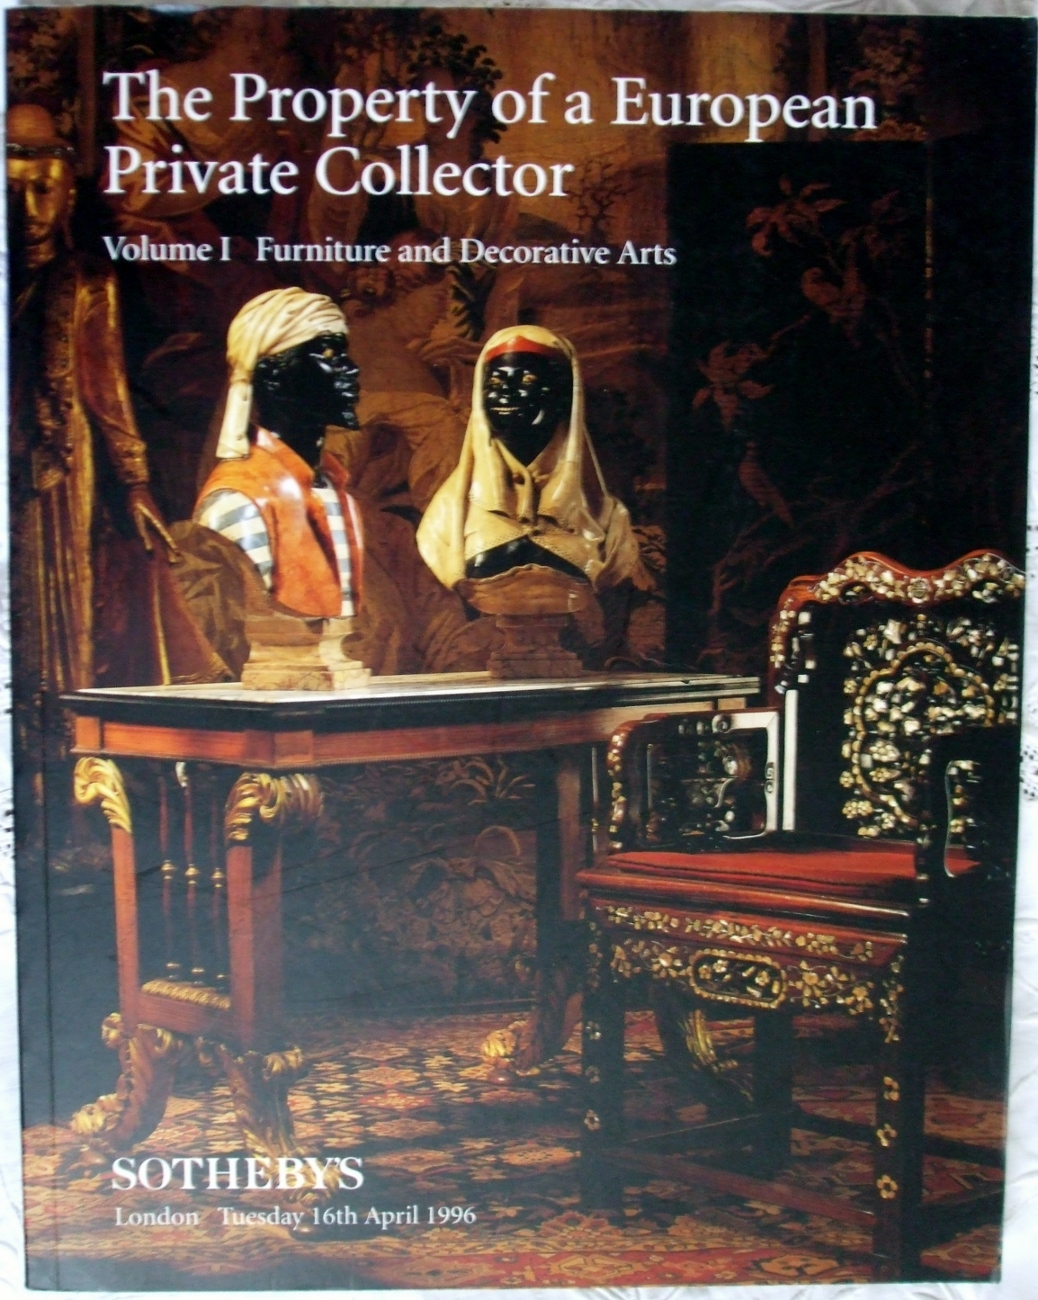 Sotheby's The Property of a European Private Collector London 16. 04. 1996